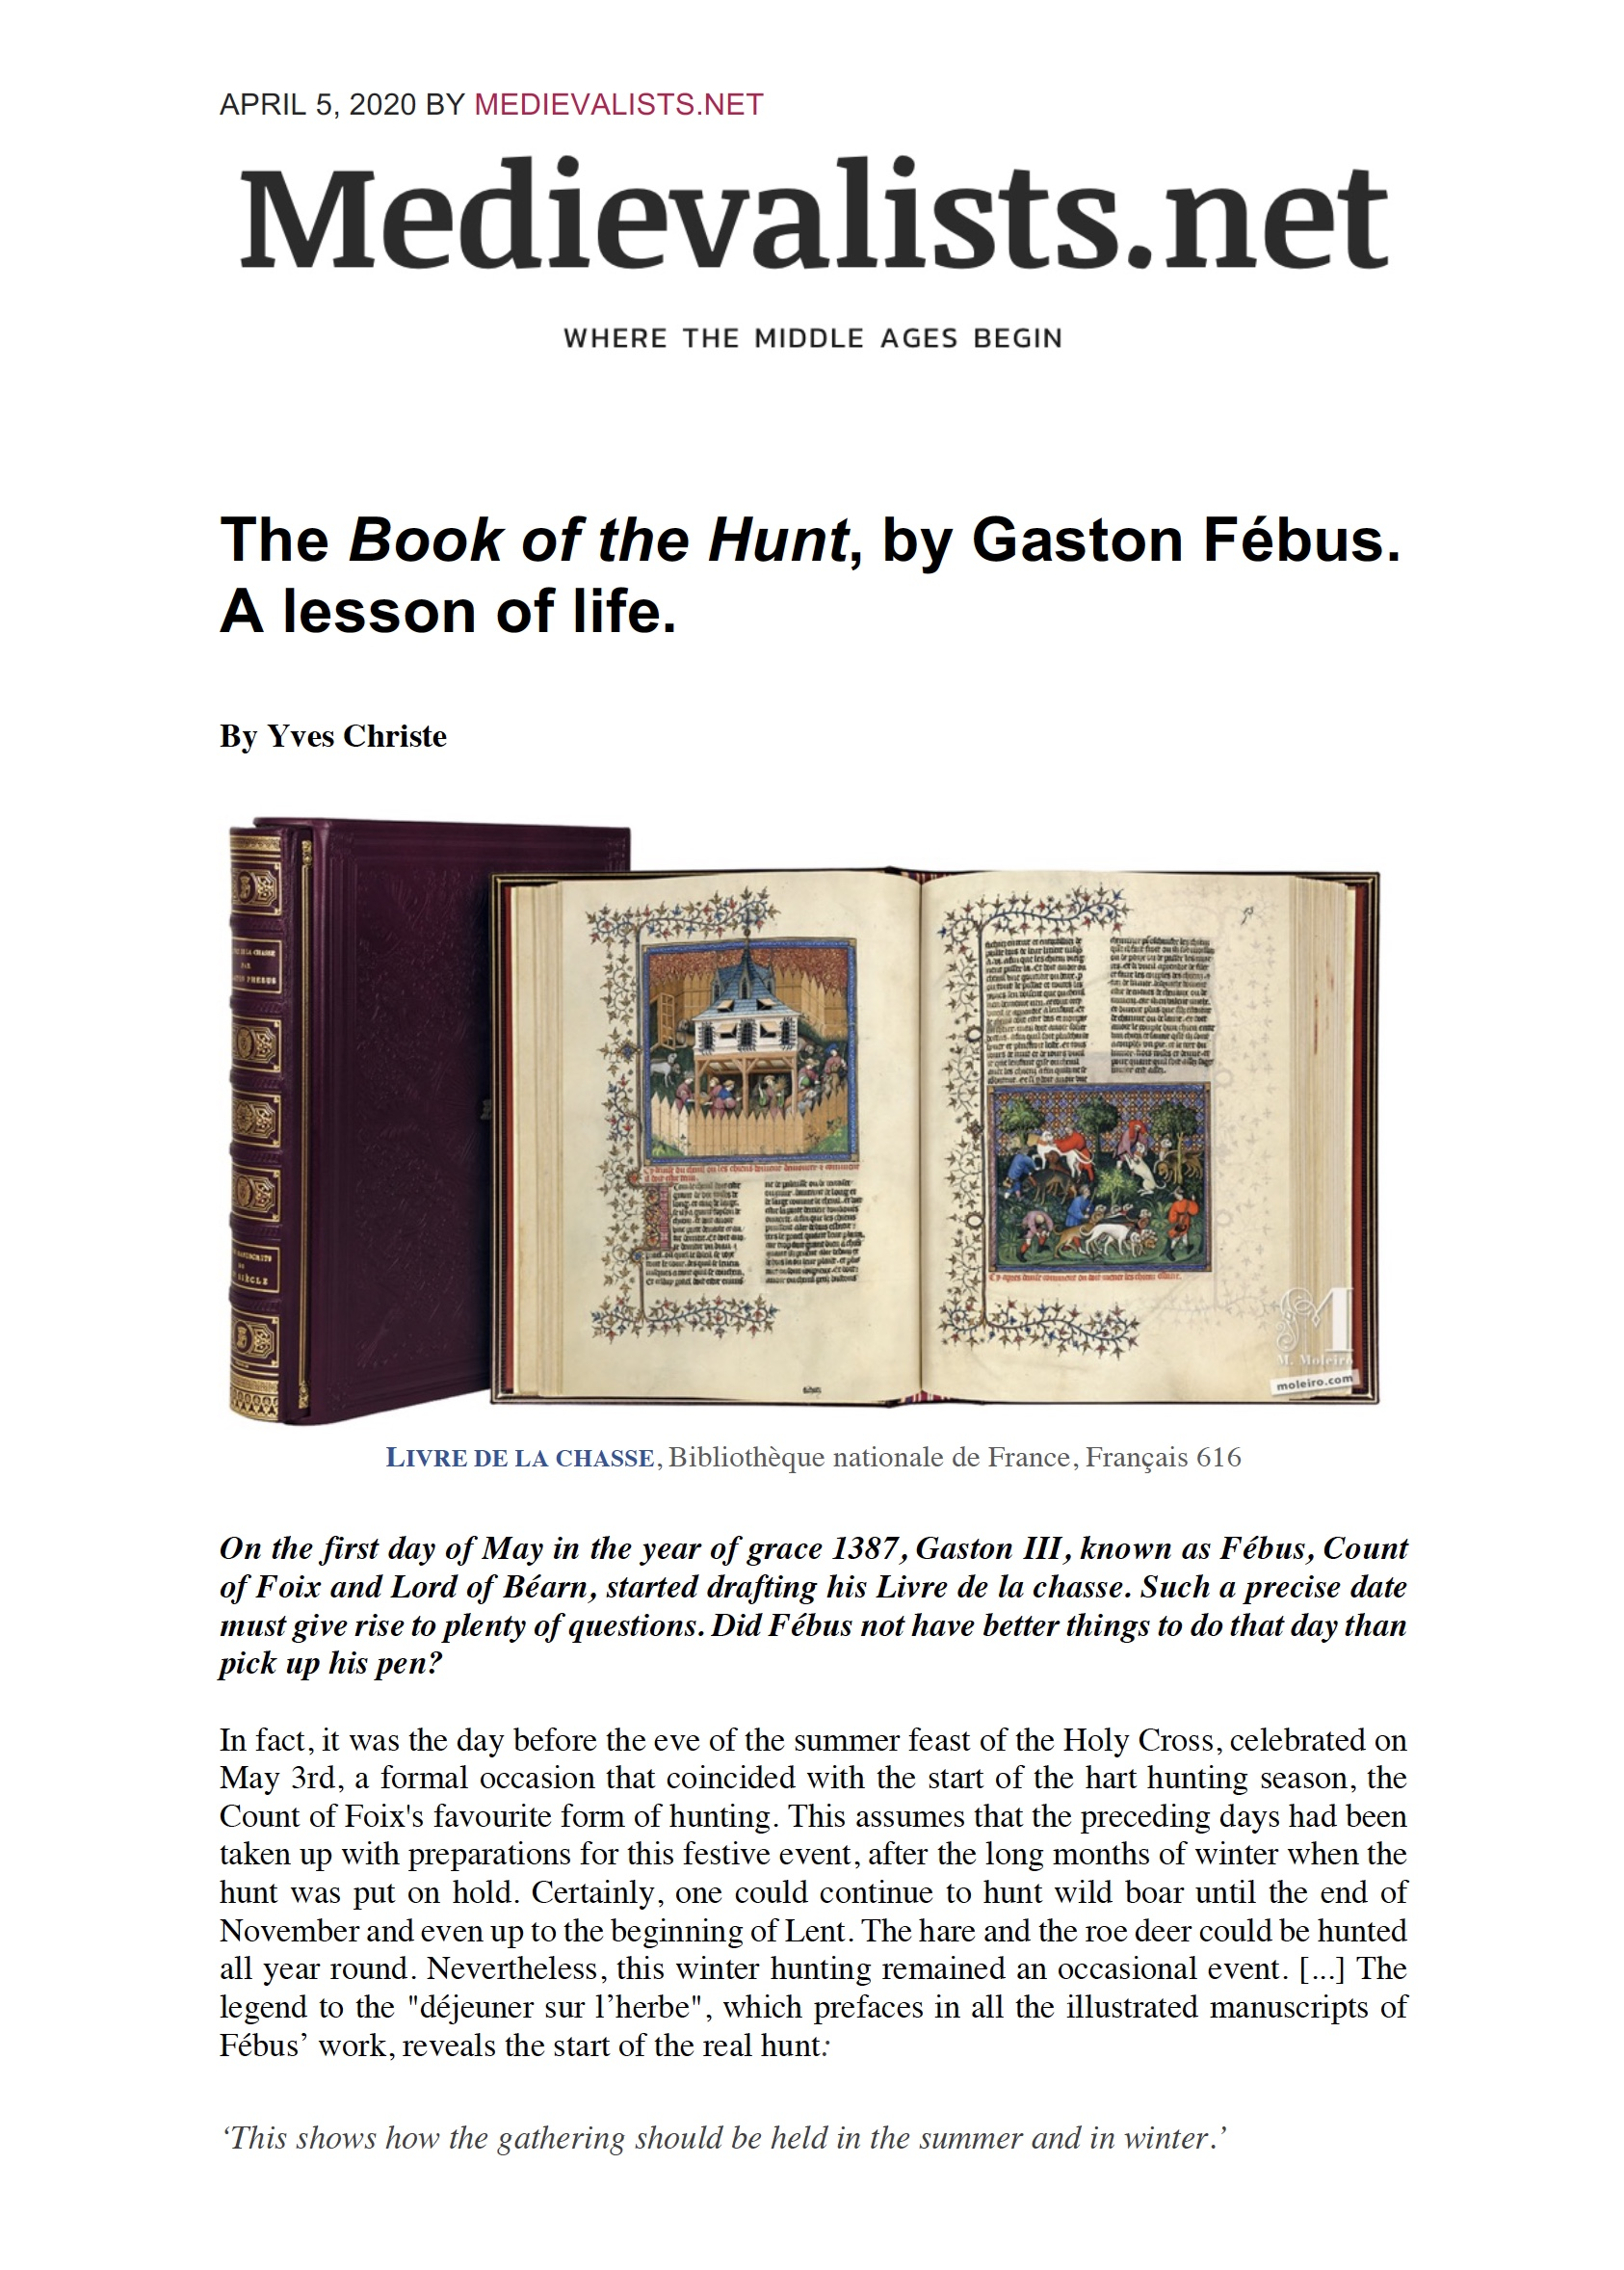 <p>The Book of the Hunt by Gaston Fébus. A lesson for life.</p>